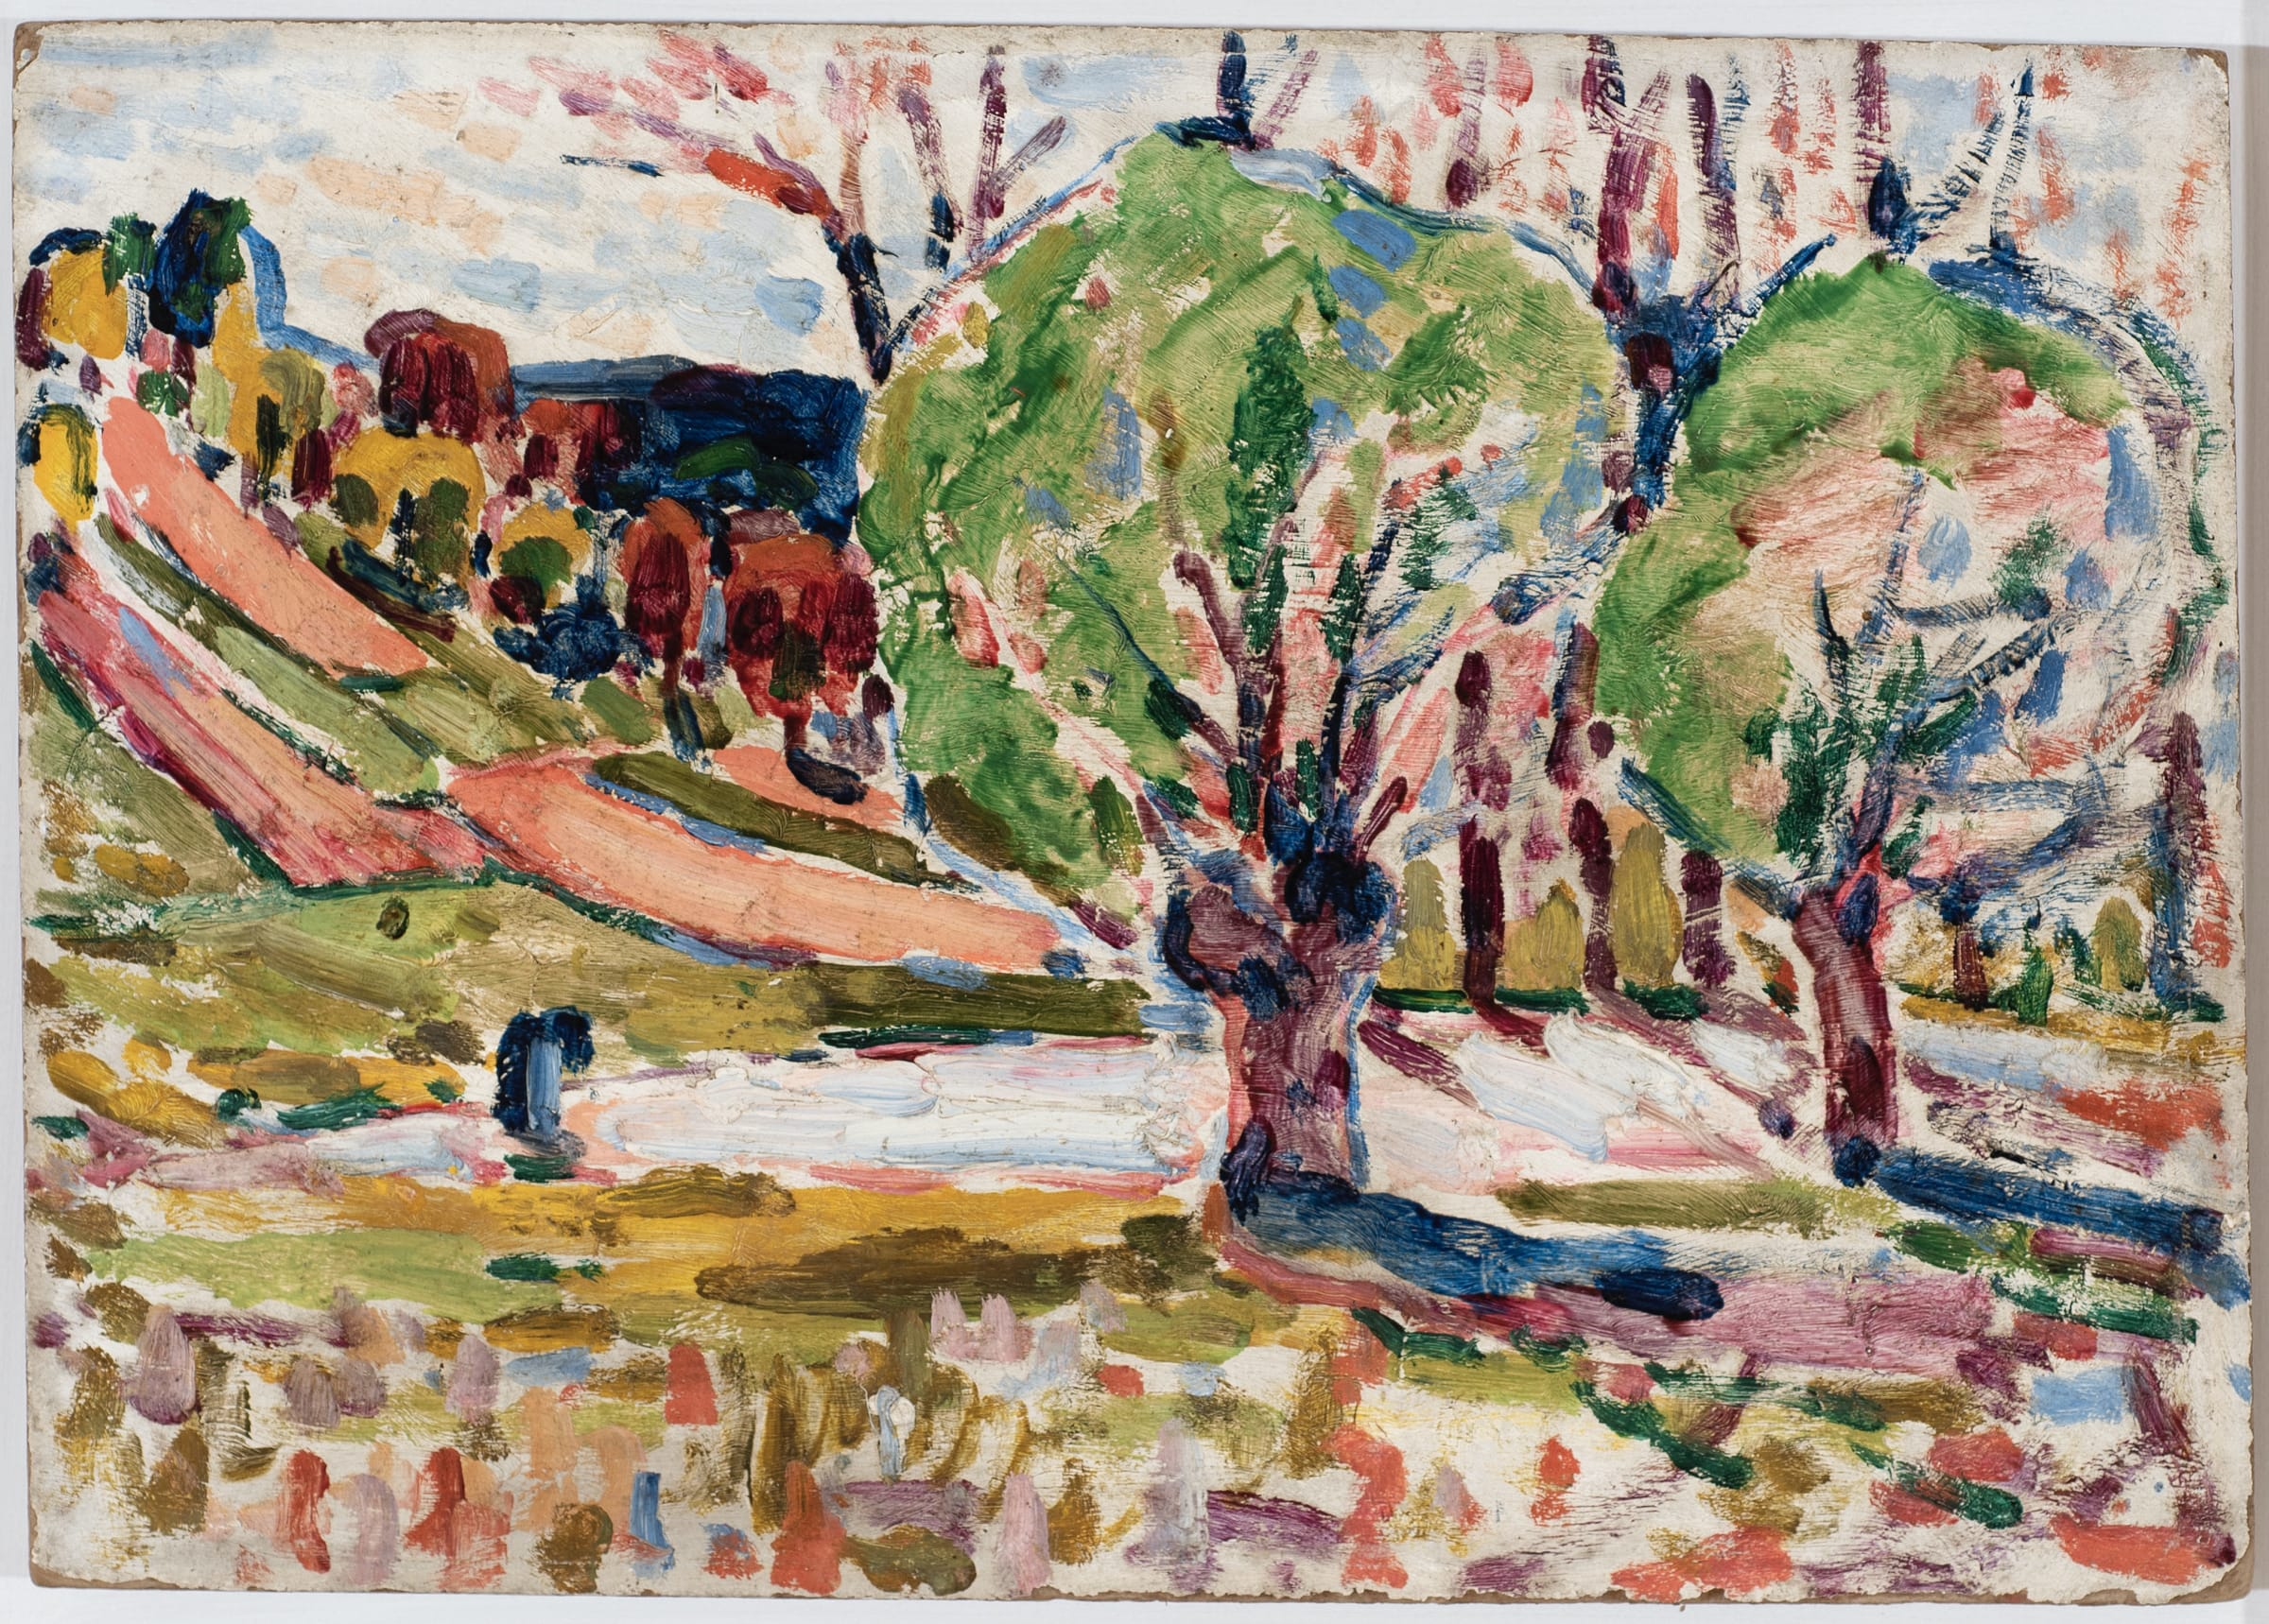 """<span class=""""link fancybox-details-link""""><a href=""""/artists/27-harry-phelan-gibb/works/1386-harry-phelan-gibb-landscape-with-trees-1906/"""">View Detail Page</a></span><div class=""""artist""""><strong>Harry Phelan Gibb</strong></div> 1870 - 1948 <div class=""""title""""><em>Landscape with Trees</em>, 1906</div> <div class=""""signed_and_dated"""">inscribed and dated verso</div> <div class=""""medium"""">oil on board</div> <div class=""""dimensions"""">25 x 35.5cm</div>"""